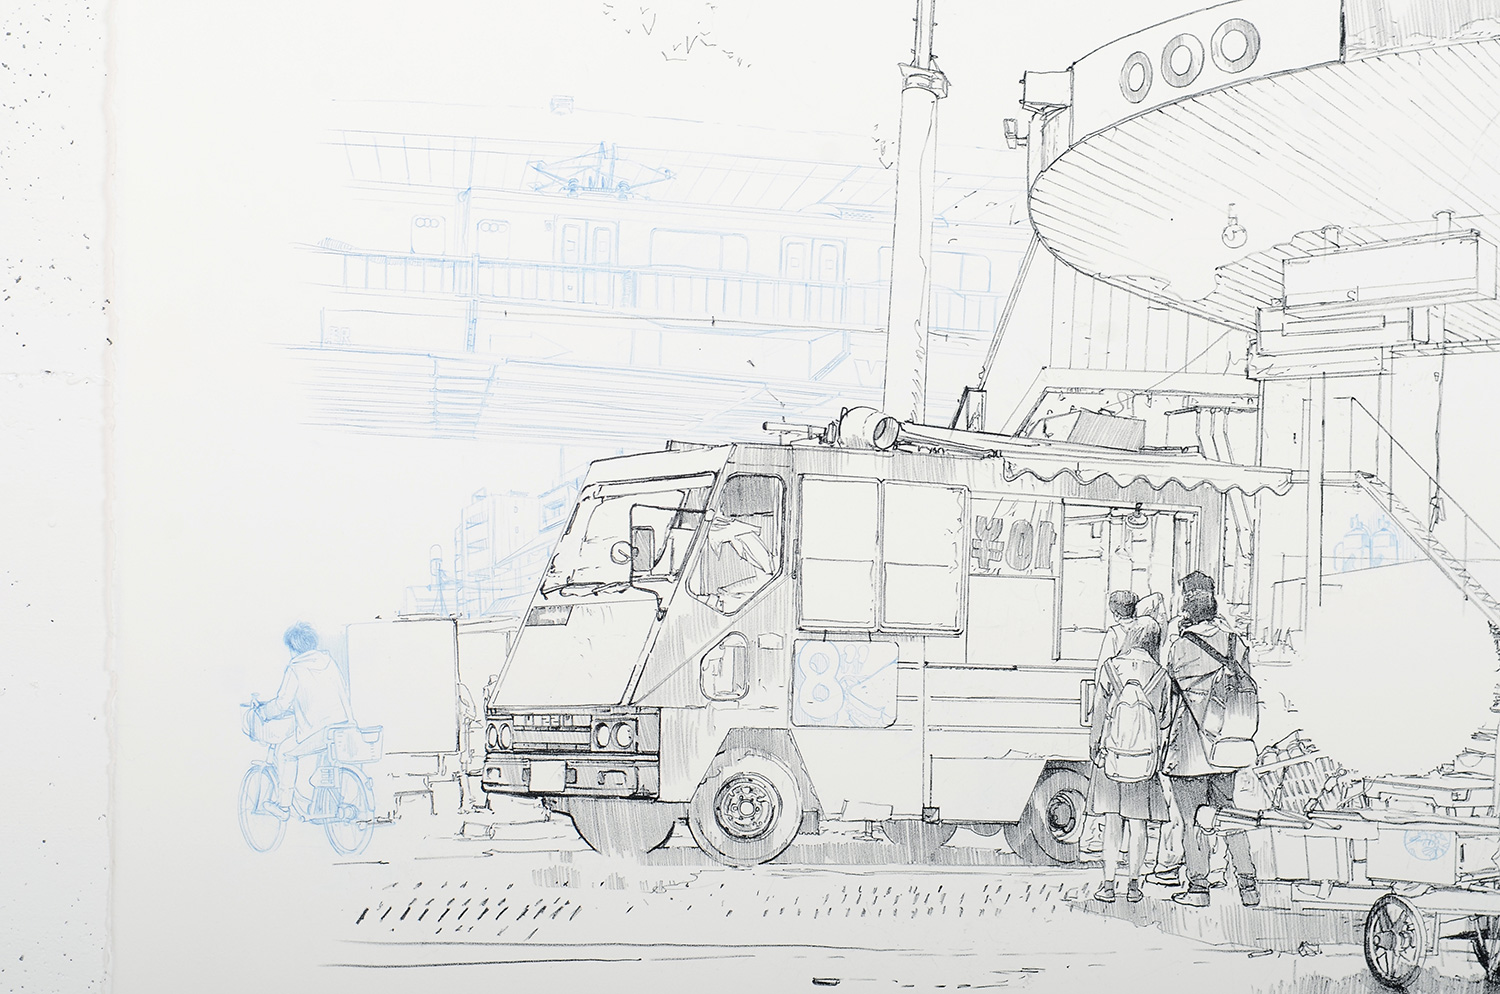 zoer_velvet_street_food_lithographie_CSX_stone_lithograph_urdla_graffiti_process_zoerism_soldart_edition_royx_nicolas_royol_61